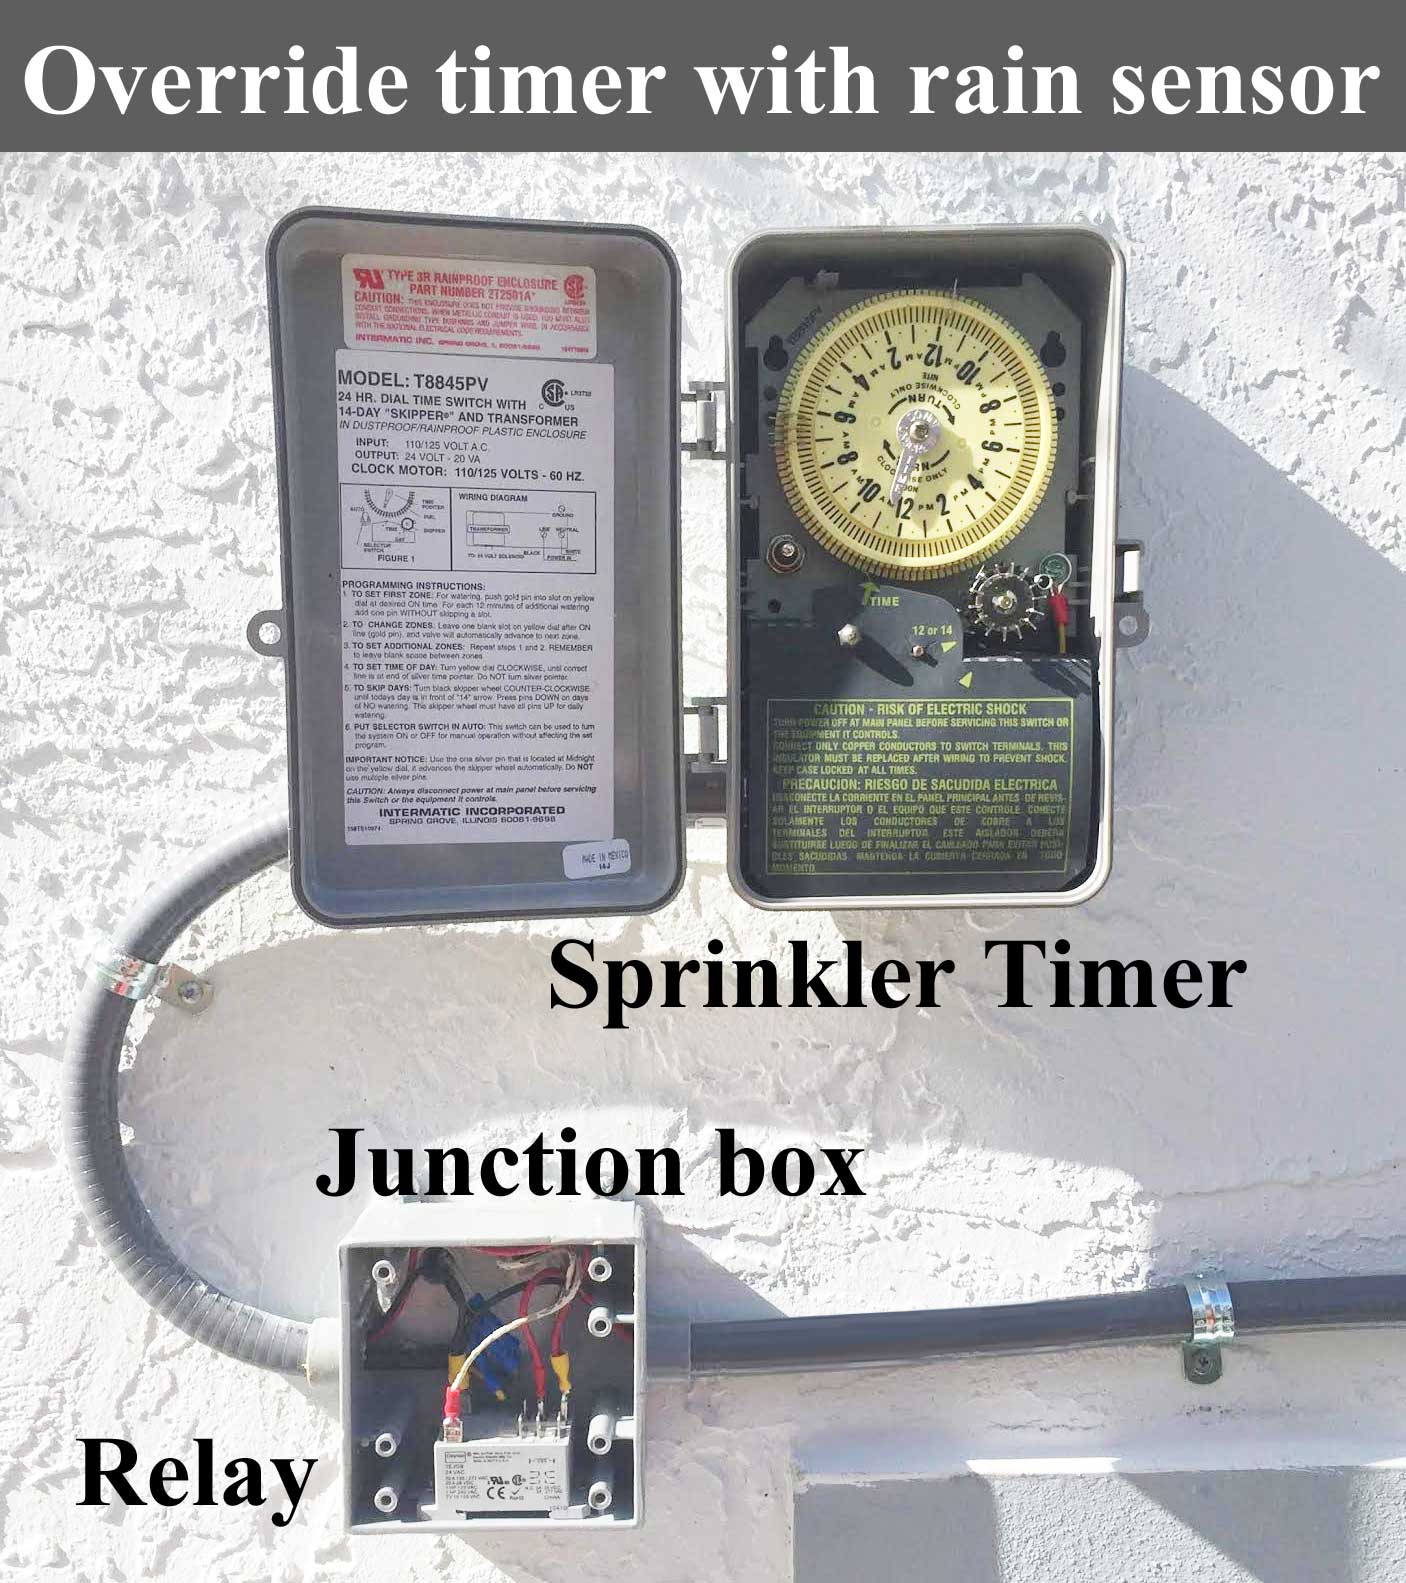 WRG-6760] Wiring Diagram For Orbit Sprinkler Timer